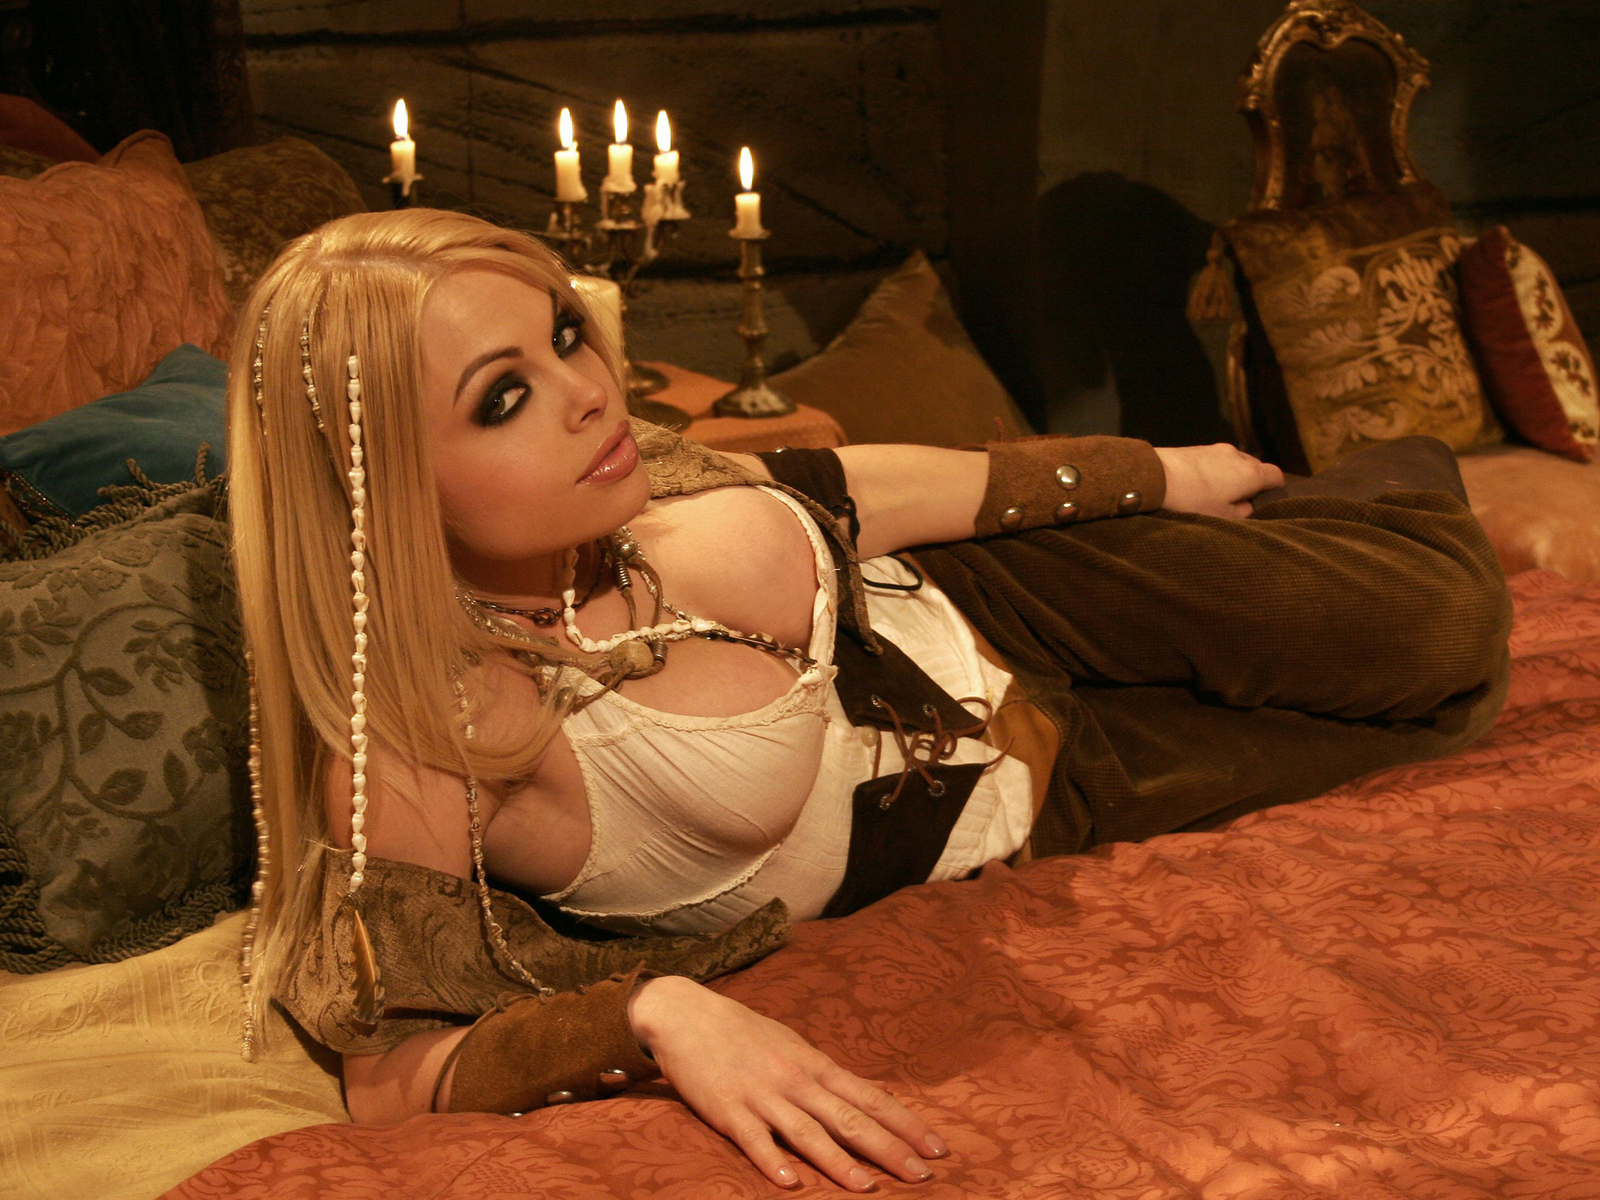 Jesse jane pirates adult movie 2005 xxx  sex clip